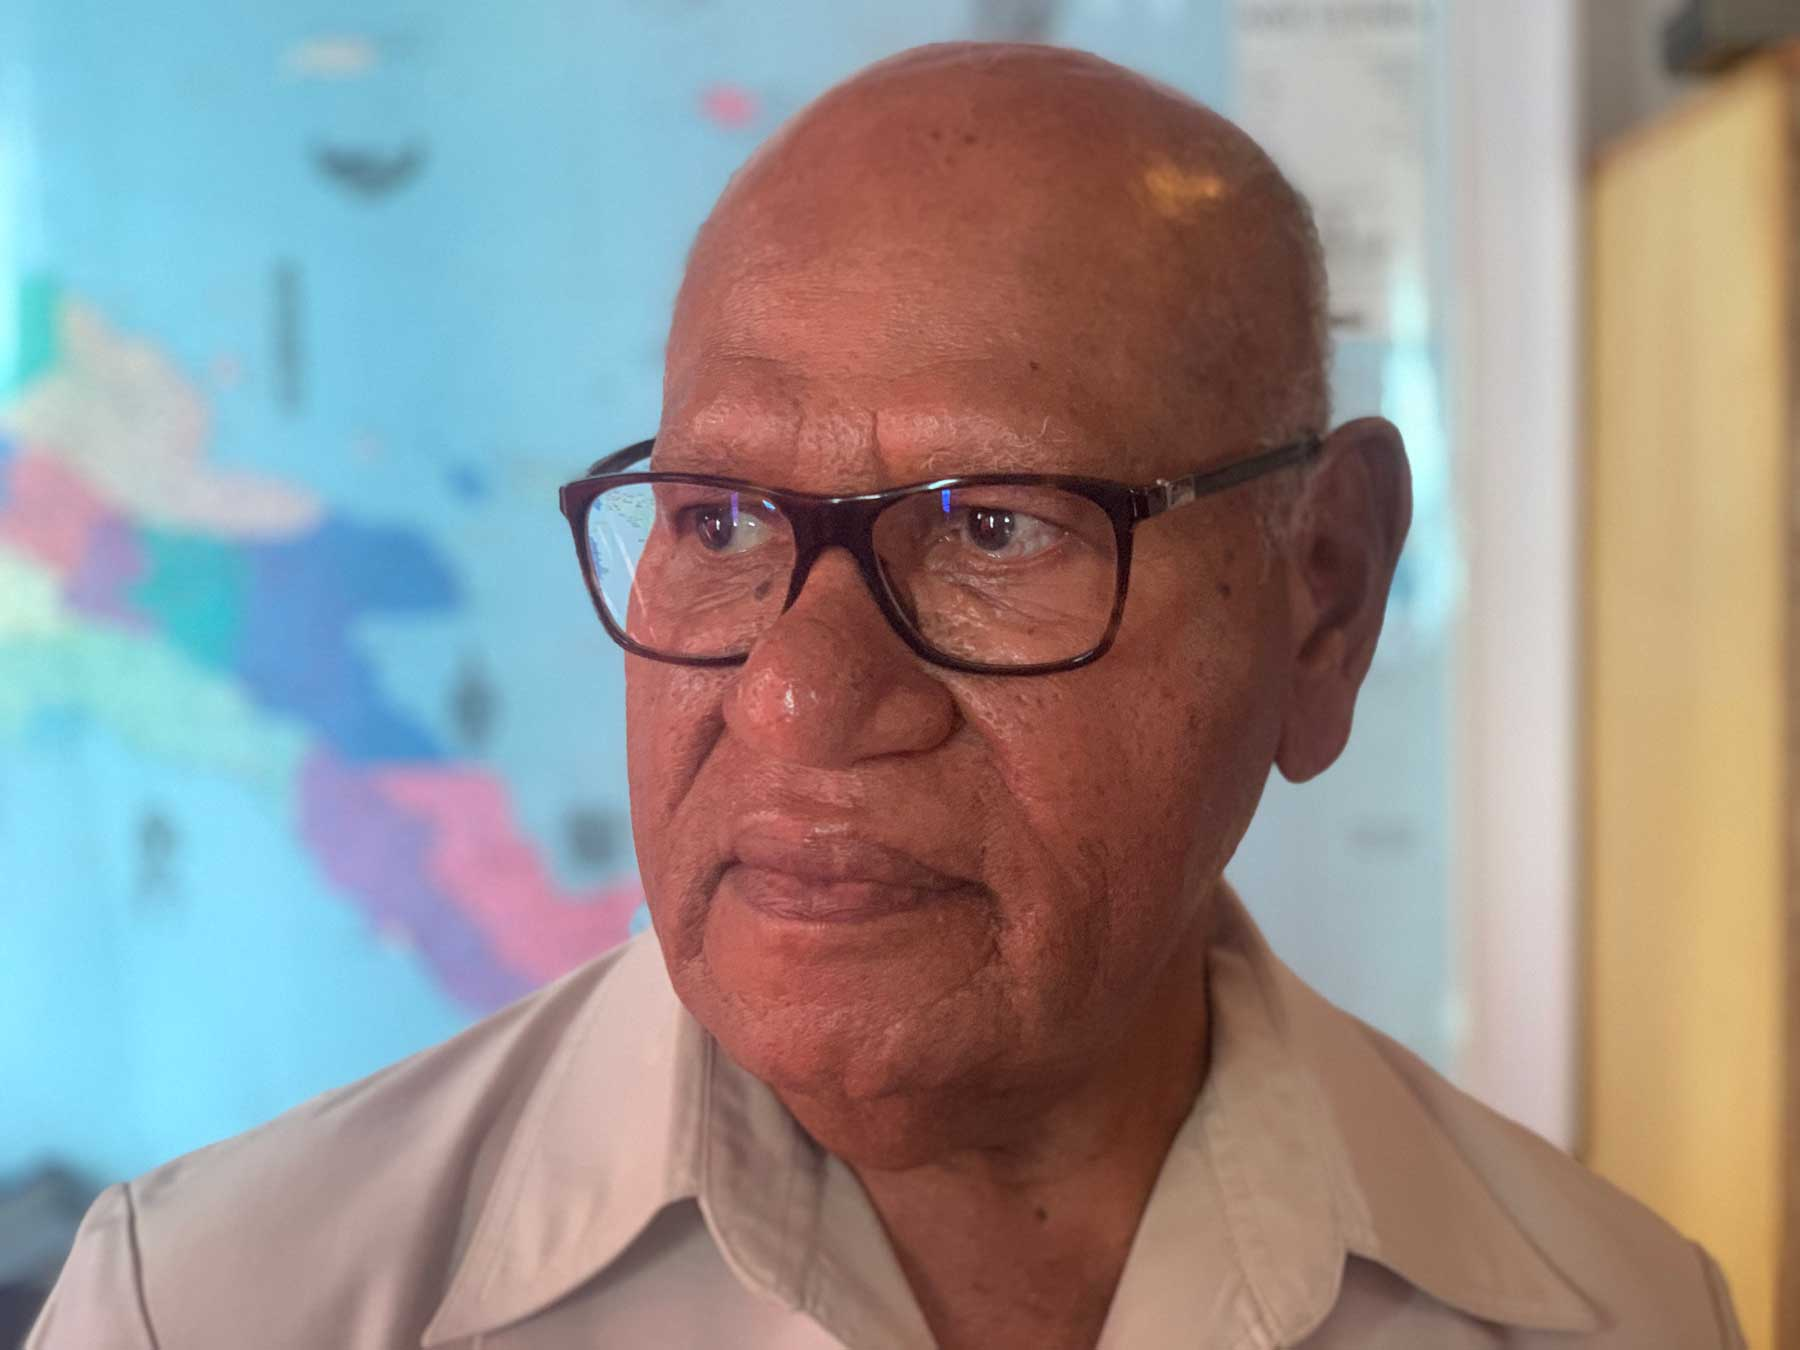 Bougainville President Dr John Momis played a leading role in the peace negotiations between Bougainville and Papua New Guinea that led to the signing of the Bougainville Peace Agreement in 2001